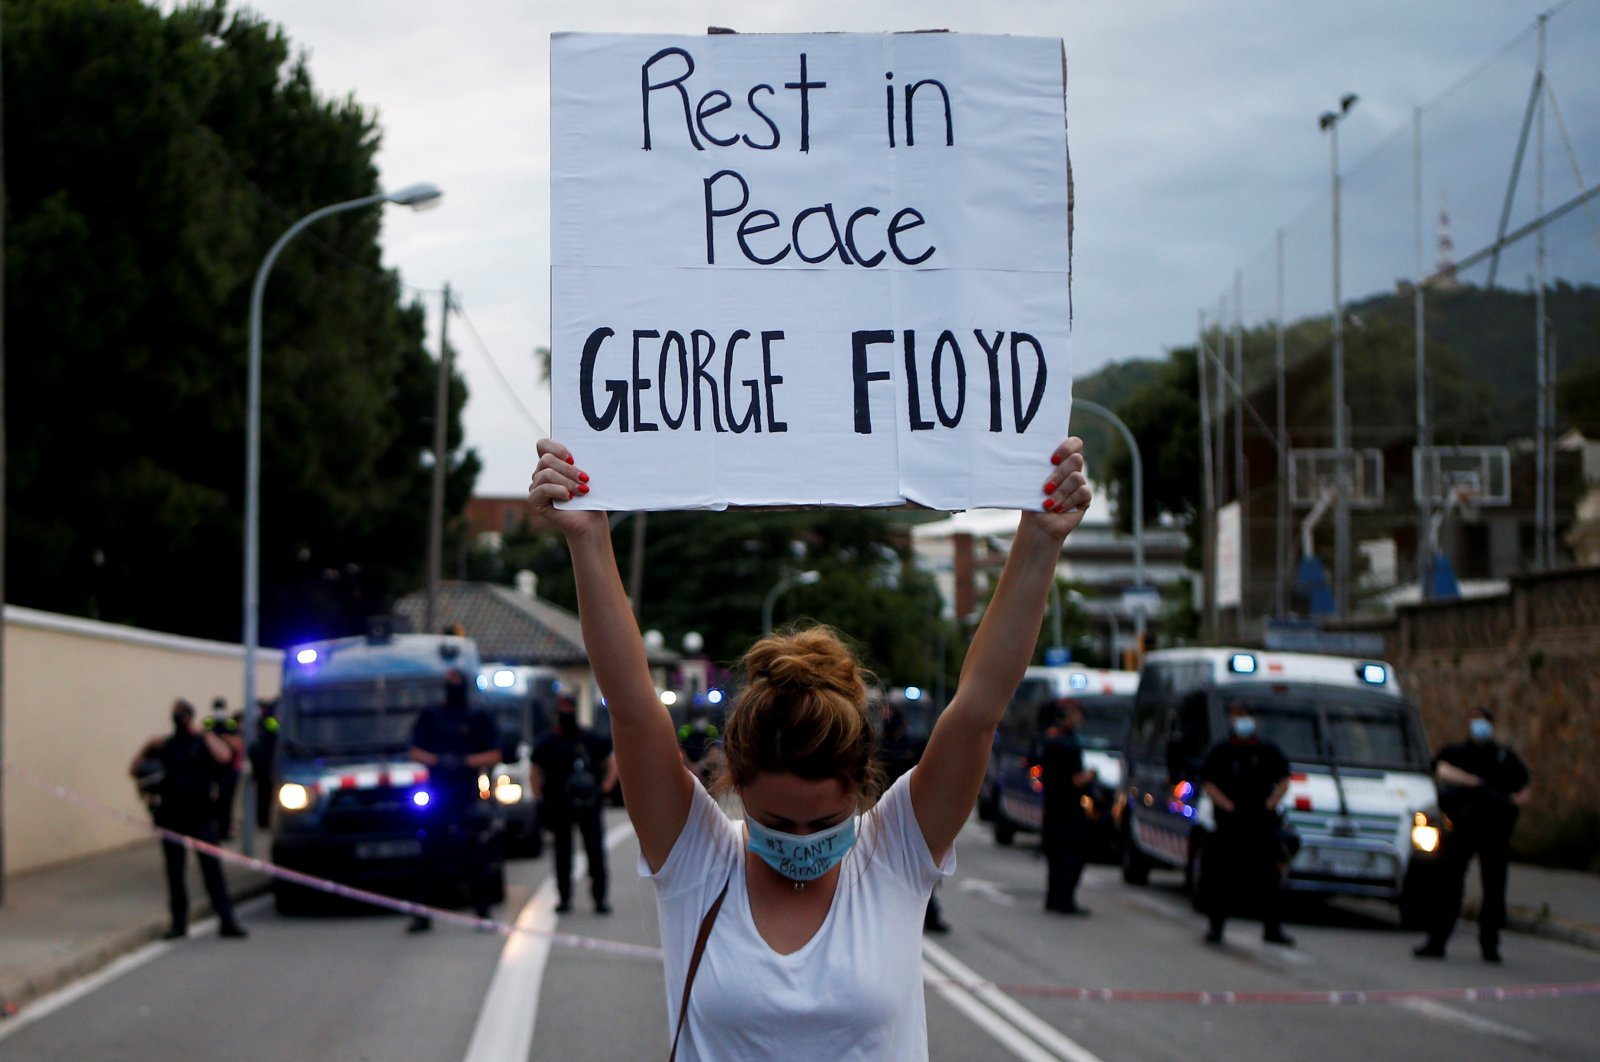 Dozens of people gather outside the U.S. Consulate in Barcelona, Catalonia, northeastern Spain, during a demonstration to protest the death of George Floyd, who died in Minneapolis police custody, June 1, 2020. (EPA Photo)